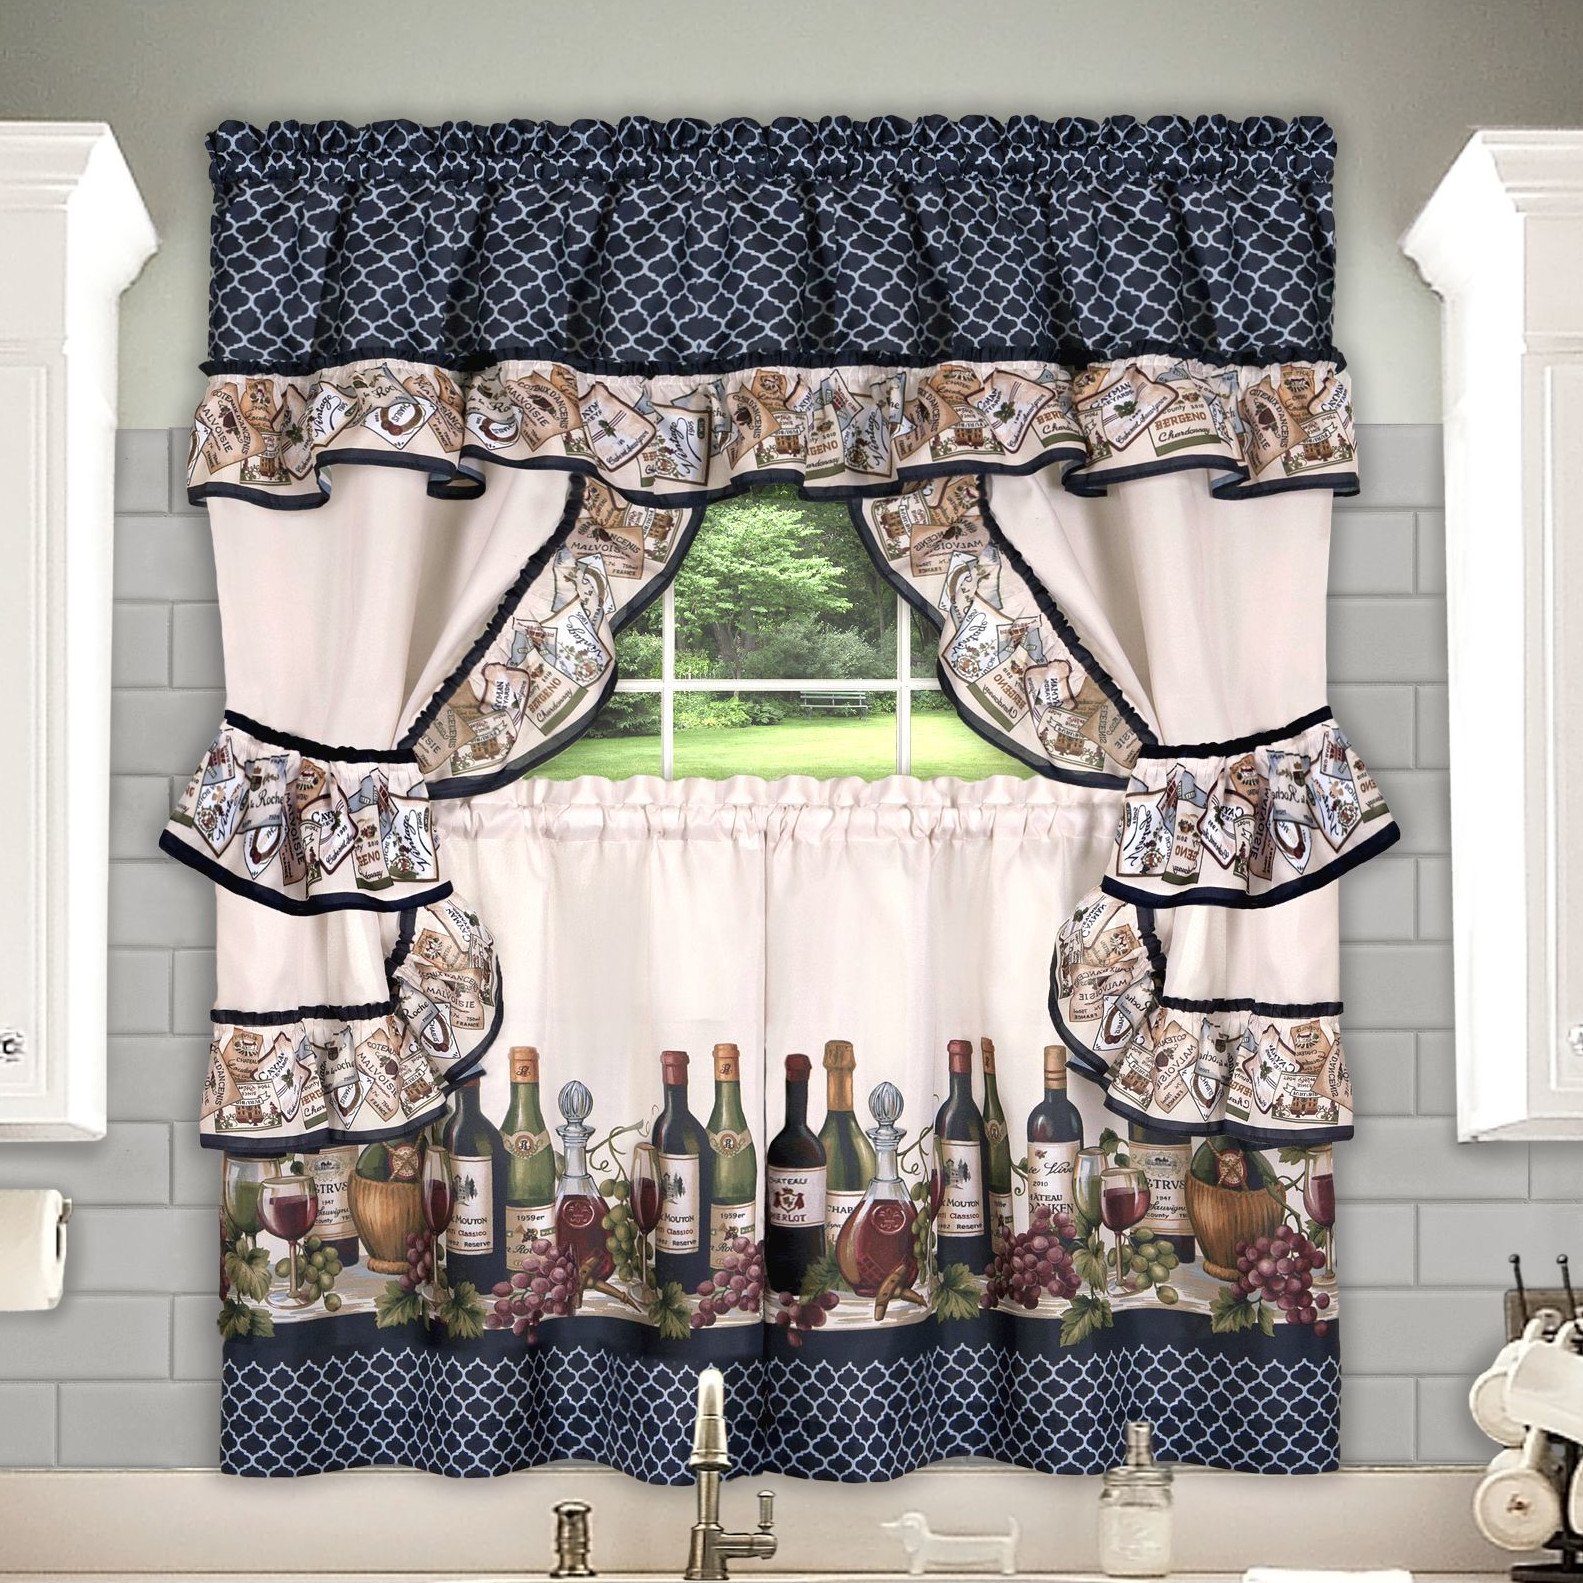 Chataeu Complete Kitchen Curtain Tier, Swag, Tiebacks & Valance Set - 24 in. Long